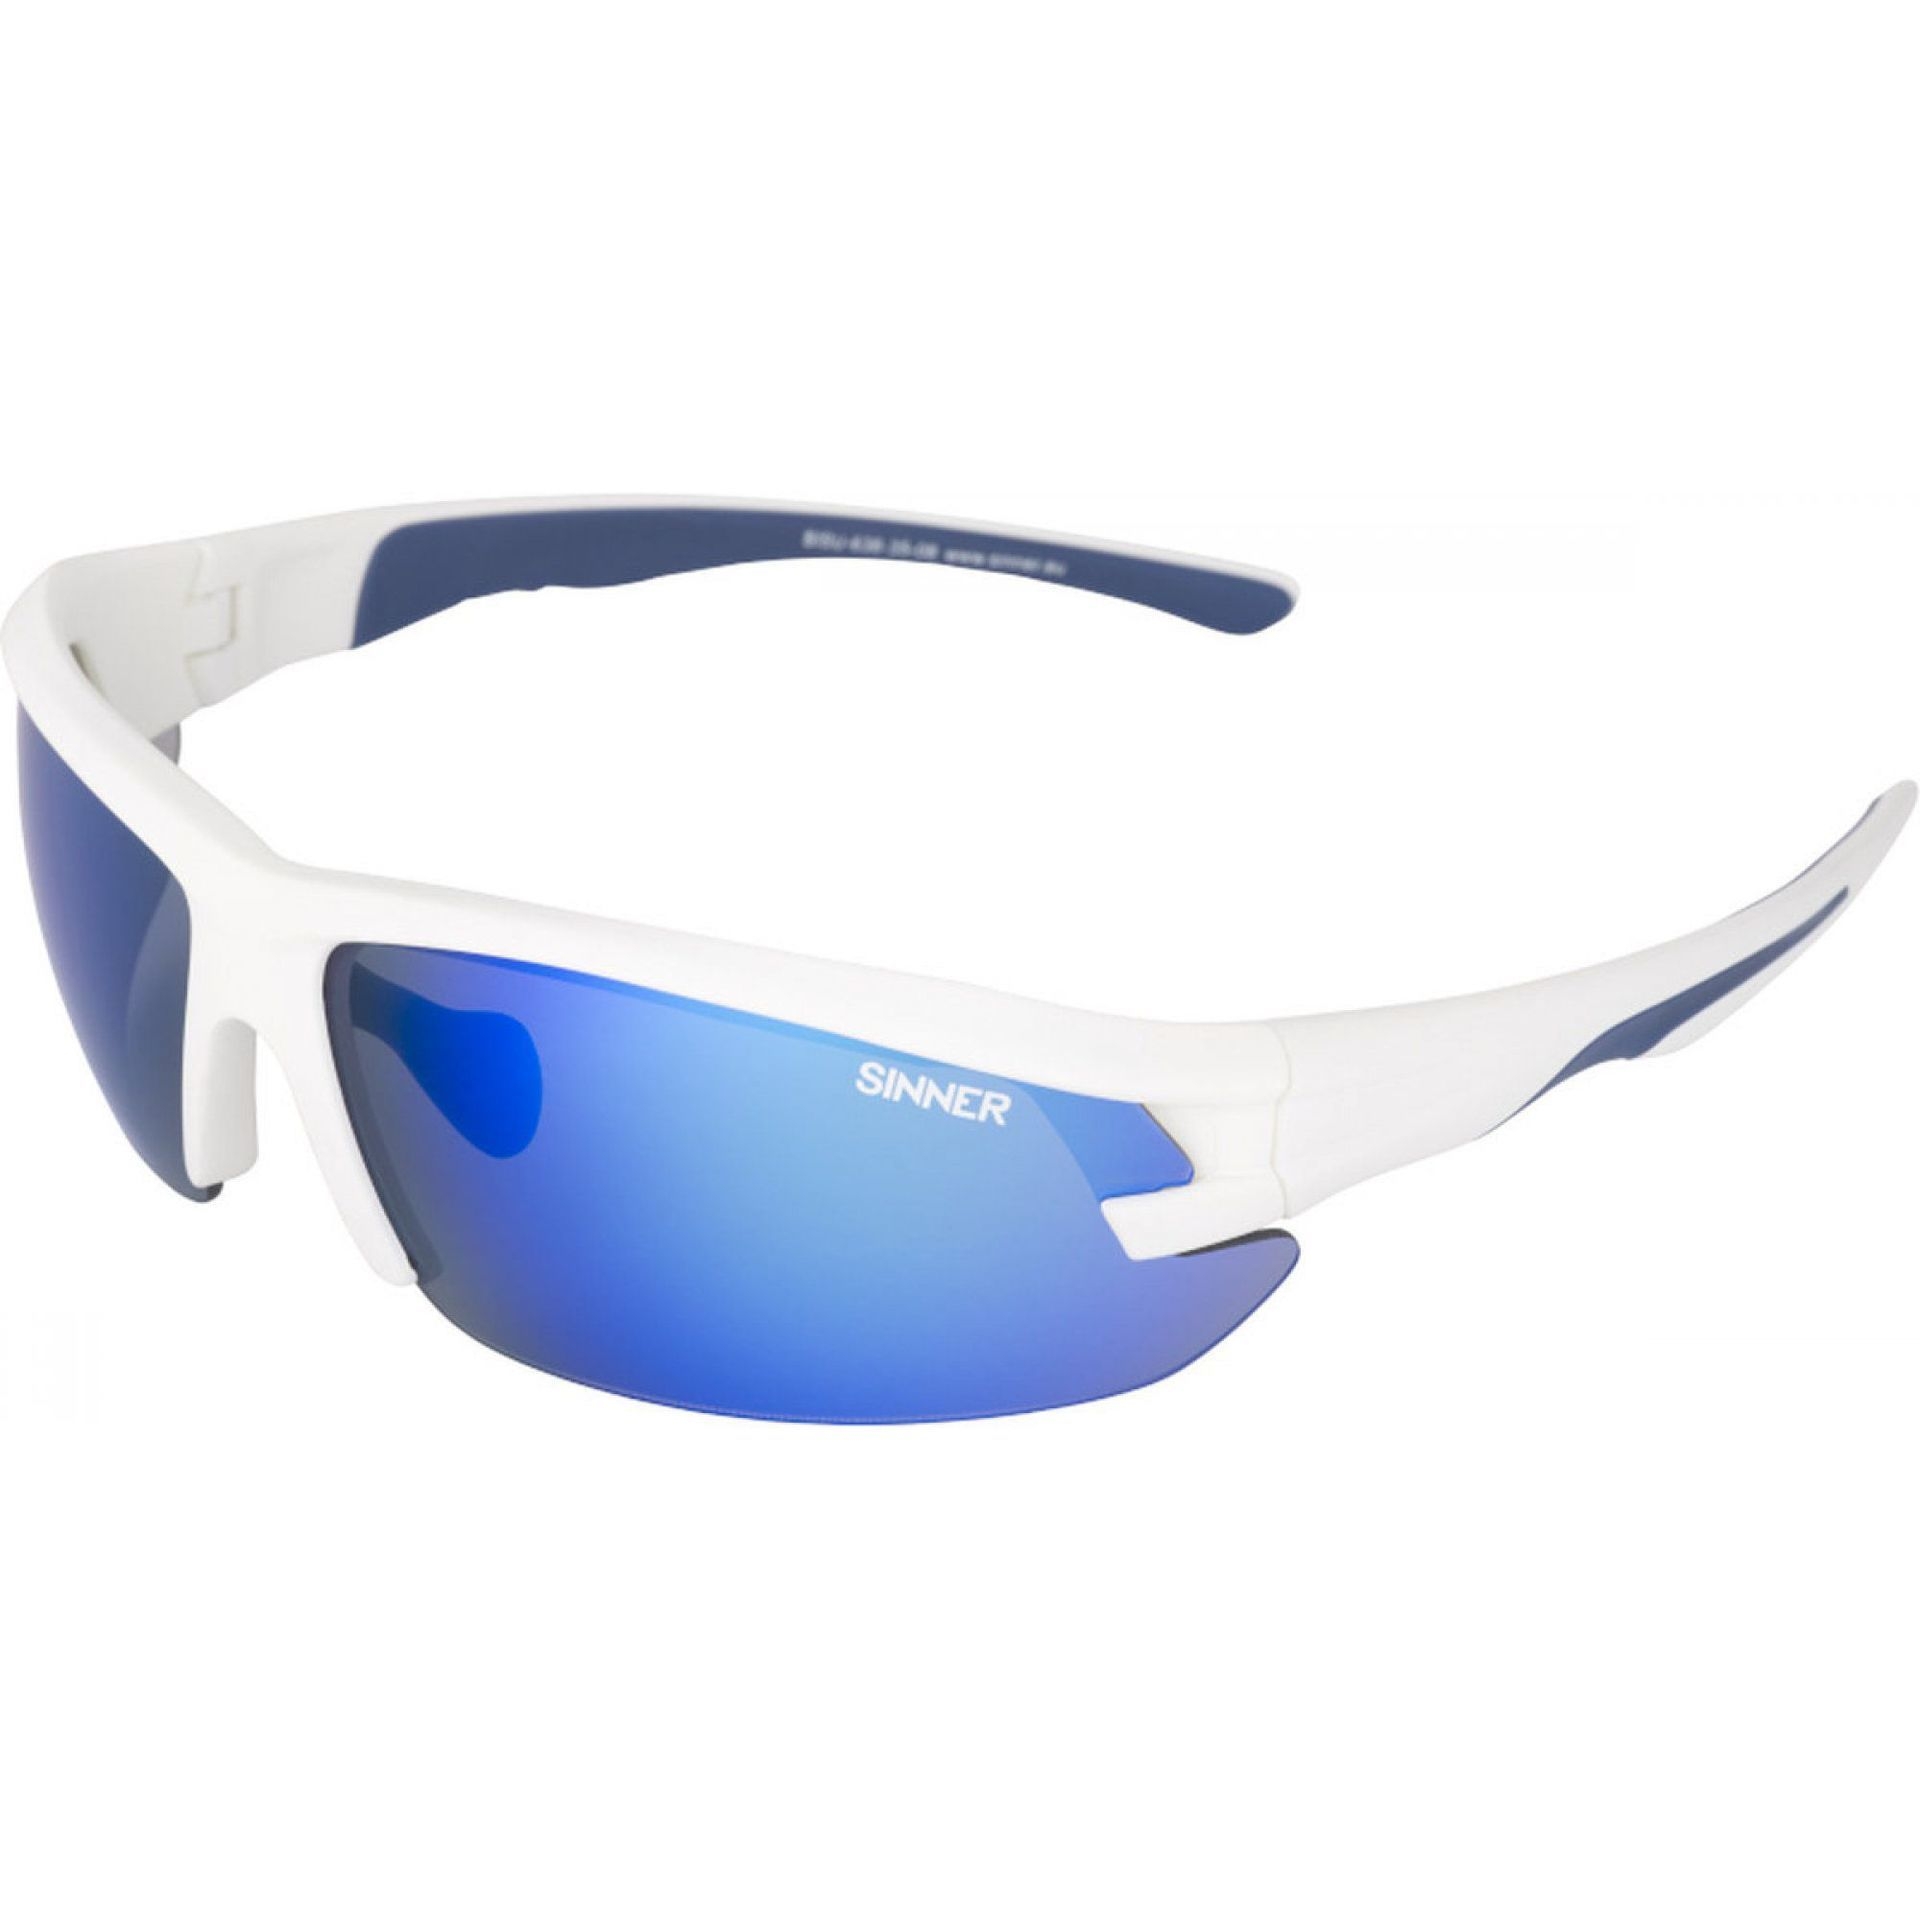 OKULARY SINNER SPEED WHITE|BLUE 1